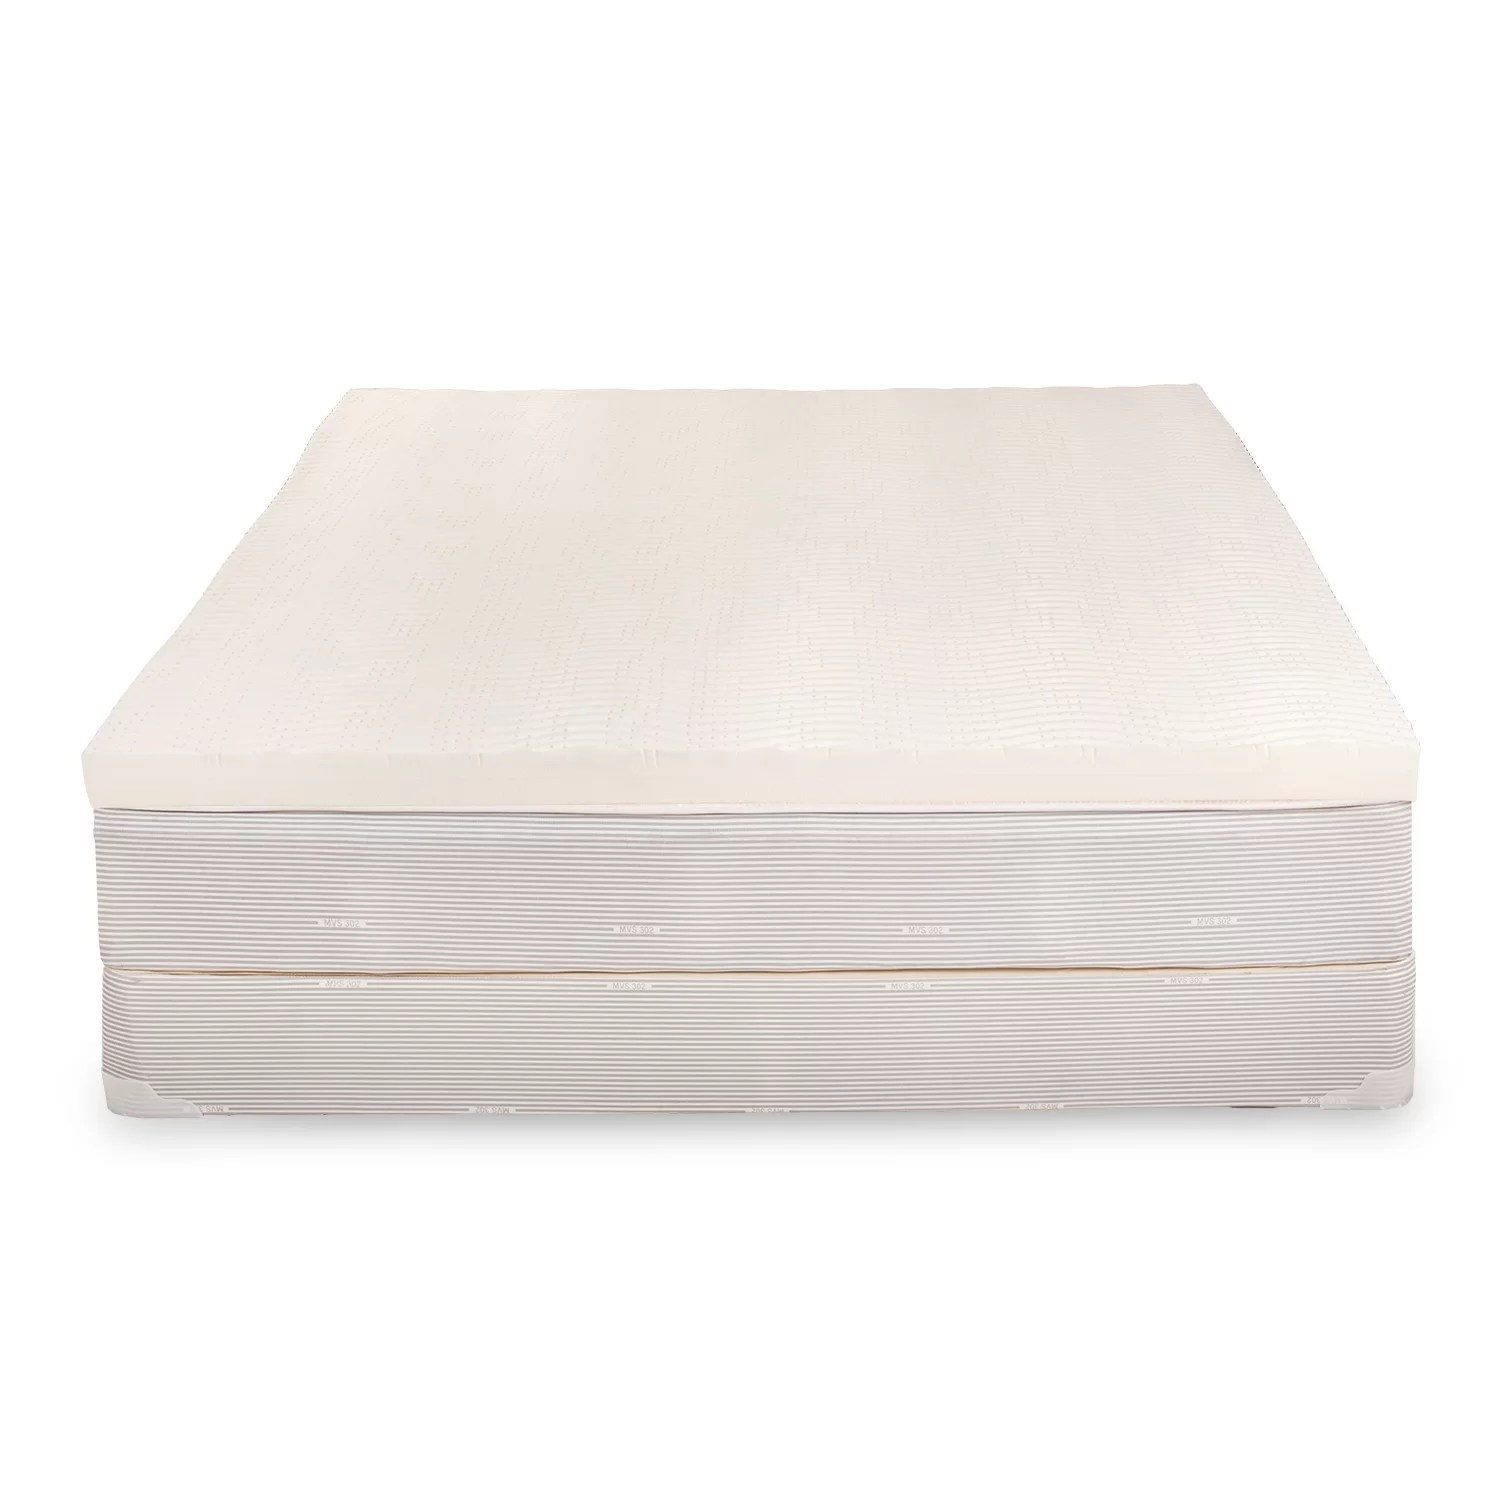 Buy Mattress Topper Latex Mattress Toppers Reviews Full Naked Bodies